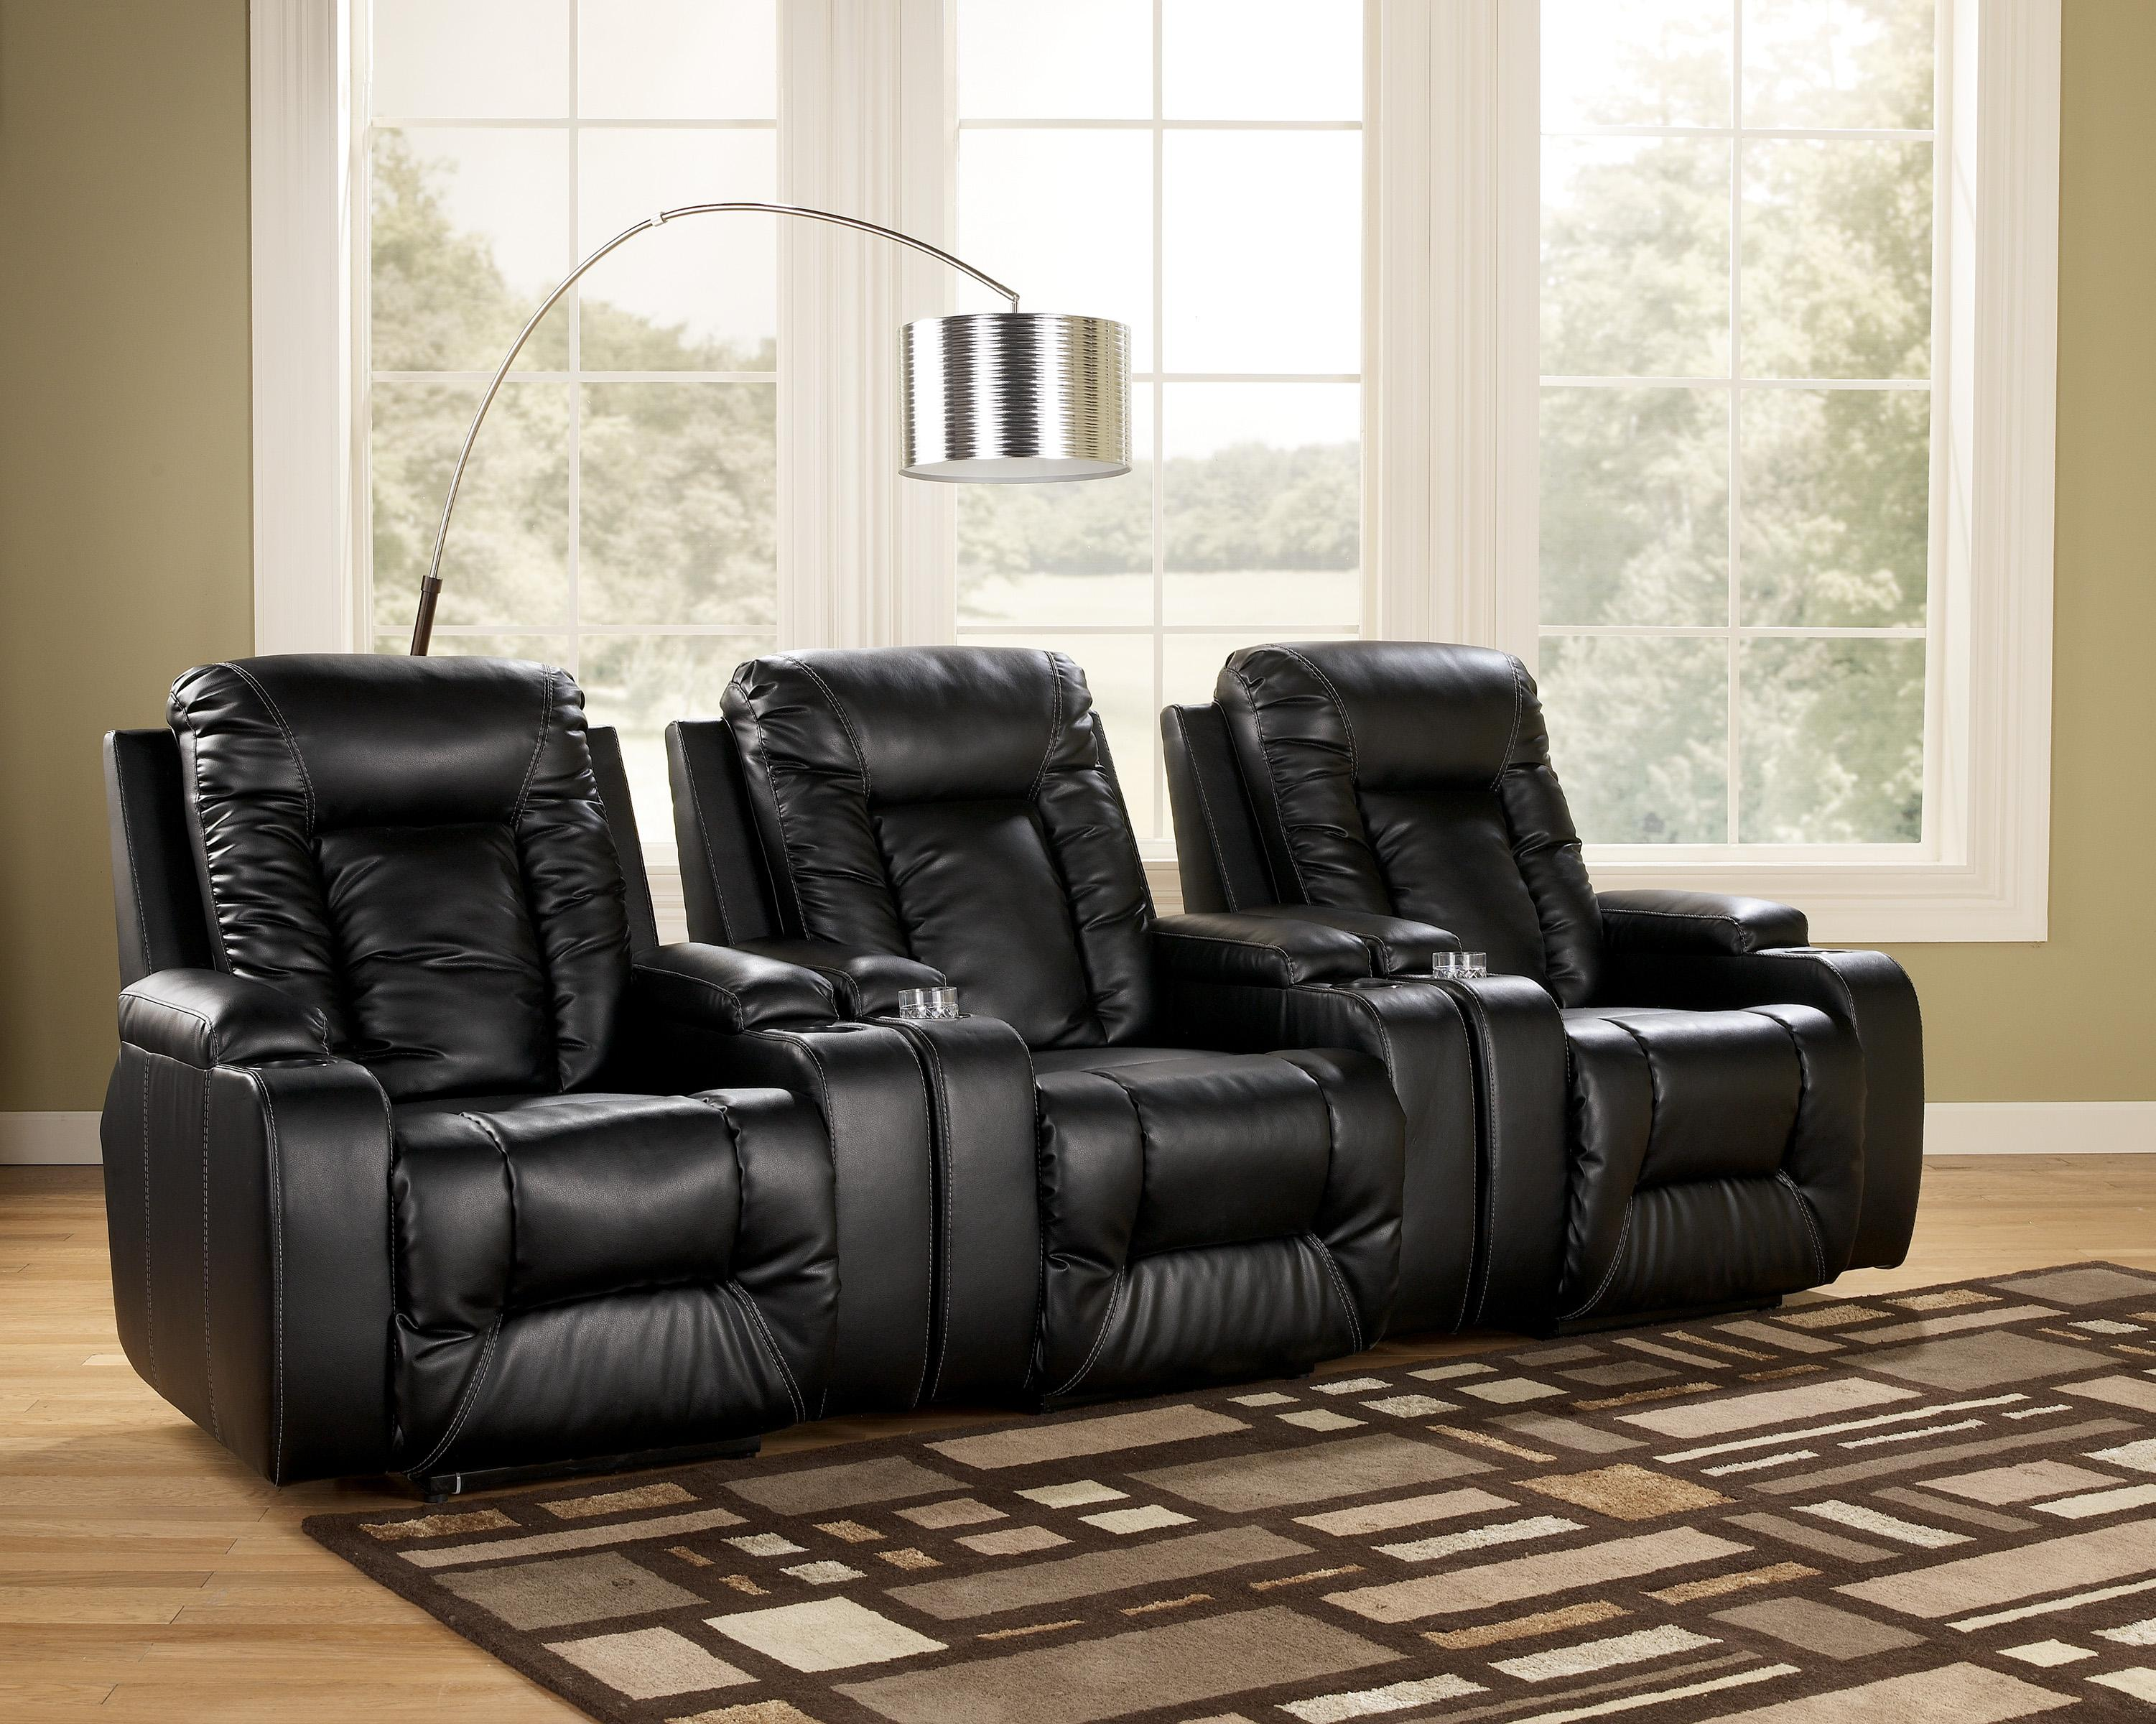 Signature Design by Ashley Matinee DuraBlend® - Eclipse 3 Piece Theater Seating Group - Item Number: 8740129x3